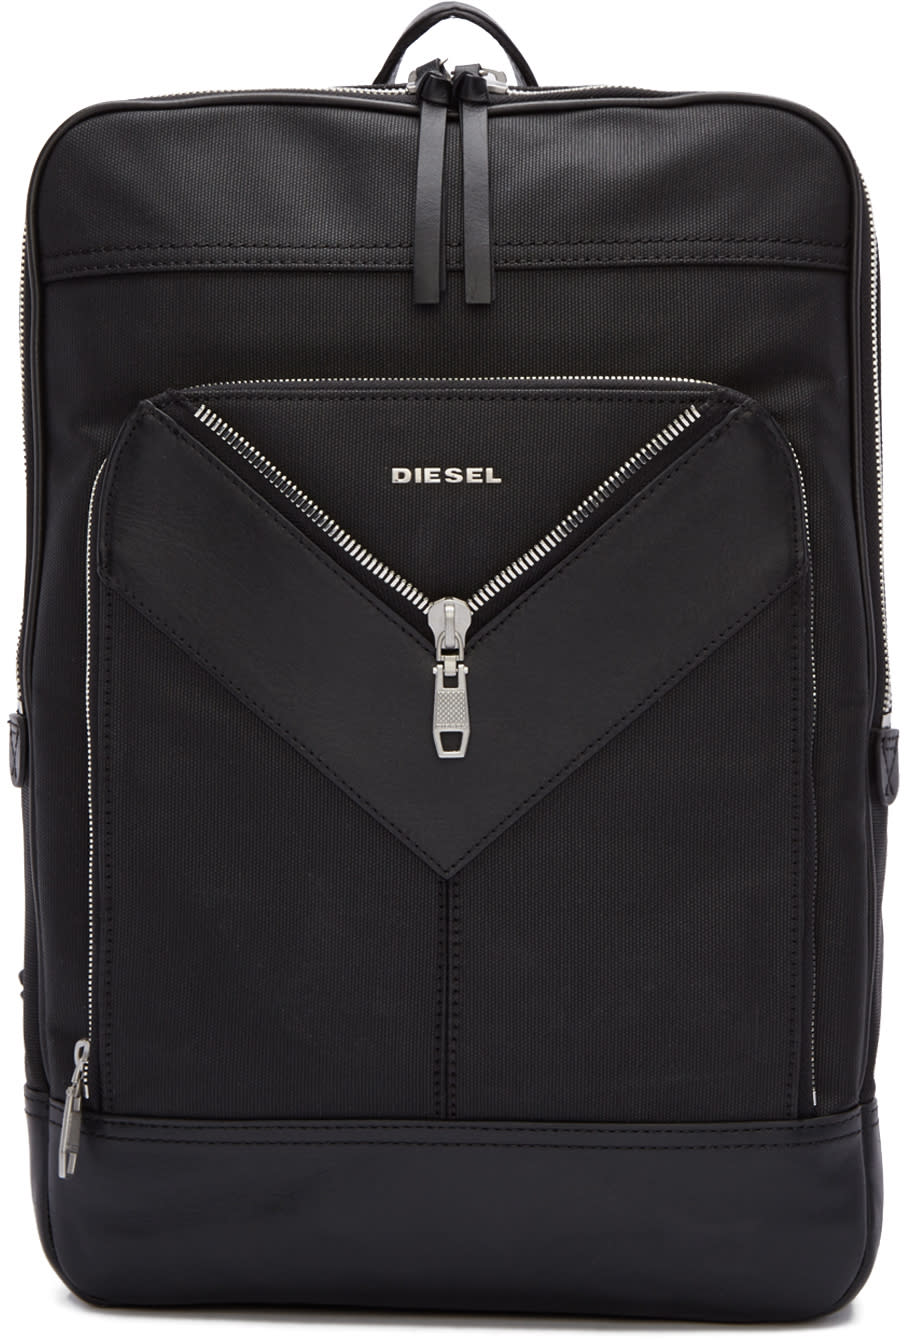 Diesel Black Mr. V Backpack